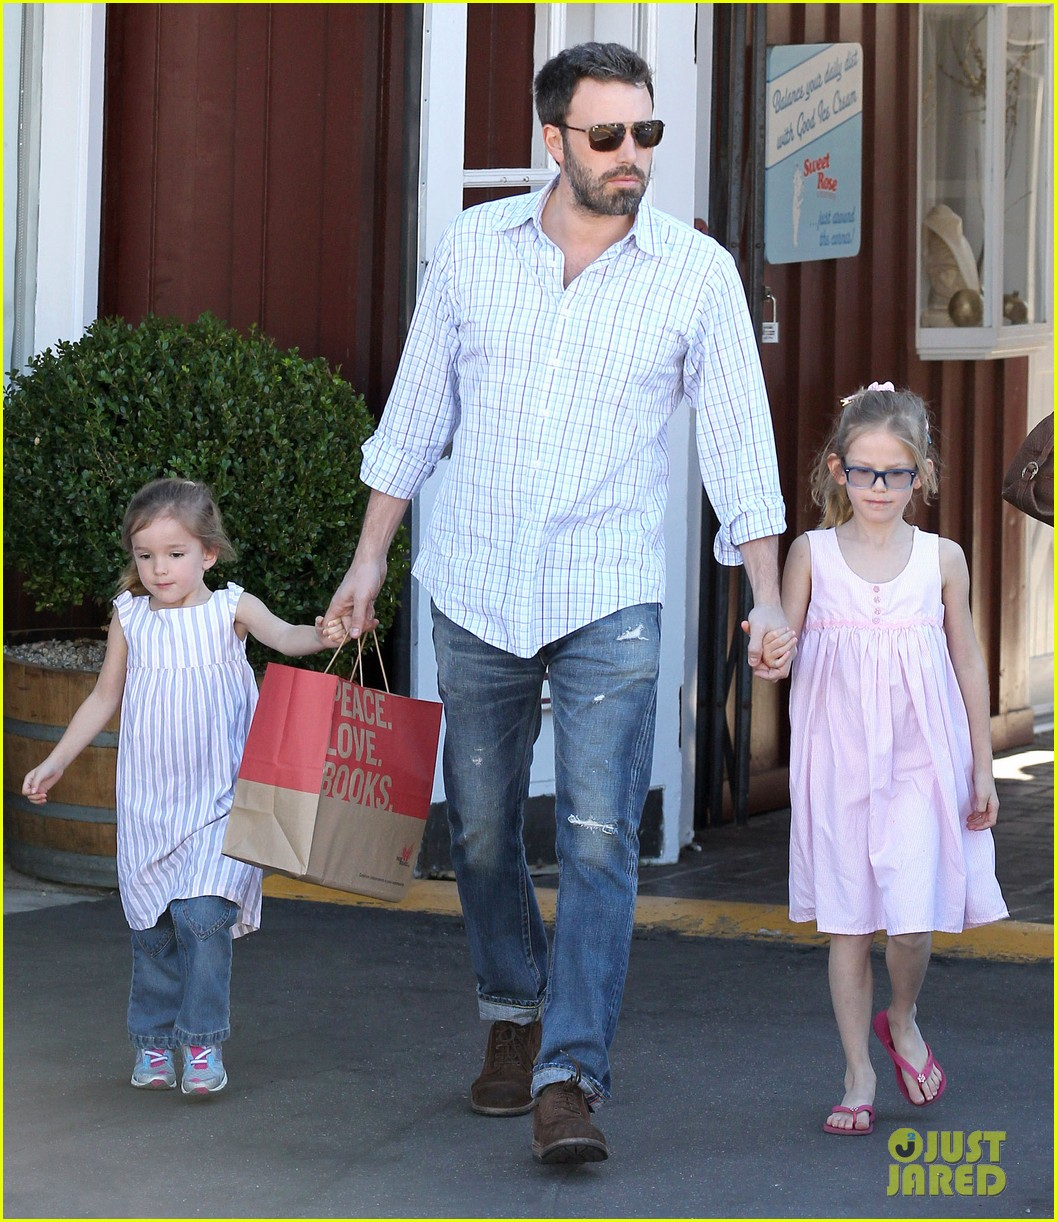 http://3.bp.blogspot.com/-DF3jxH4tS-Y/UQAdBy-FG0I/AAAAAAAAuBU/CiIncAK3X0E/s1600/jennifer-garner-ben-affleck-weekend-outings-with-the-girls-07.jpg